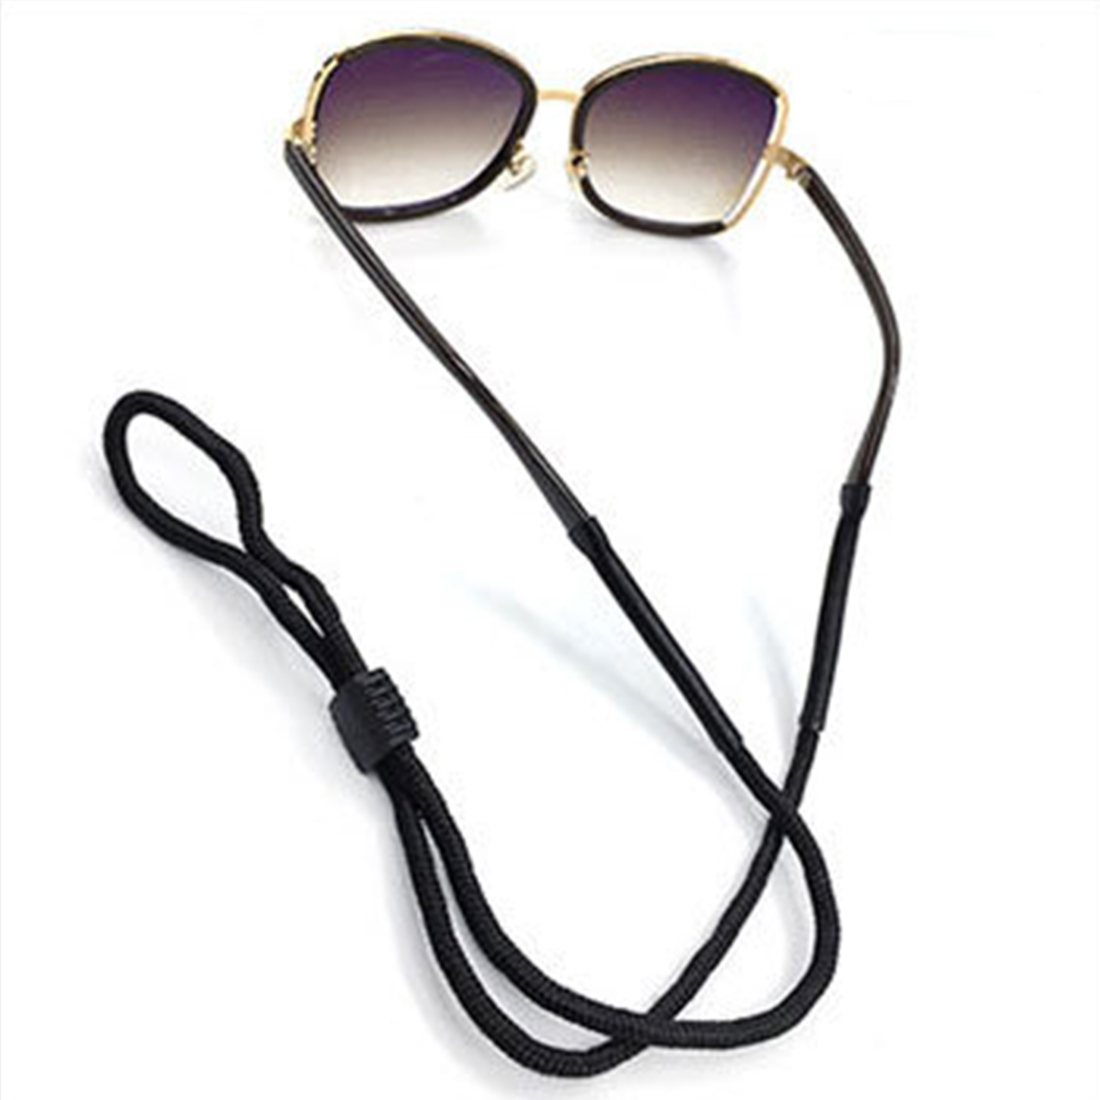 Floating Sunglasses Chain Sport Glasses Cord Eyeglasses Eyewear Holder Neck Strap Reading